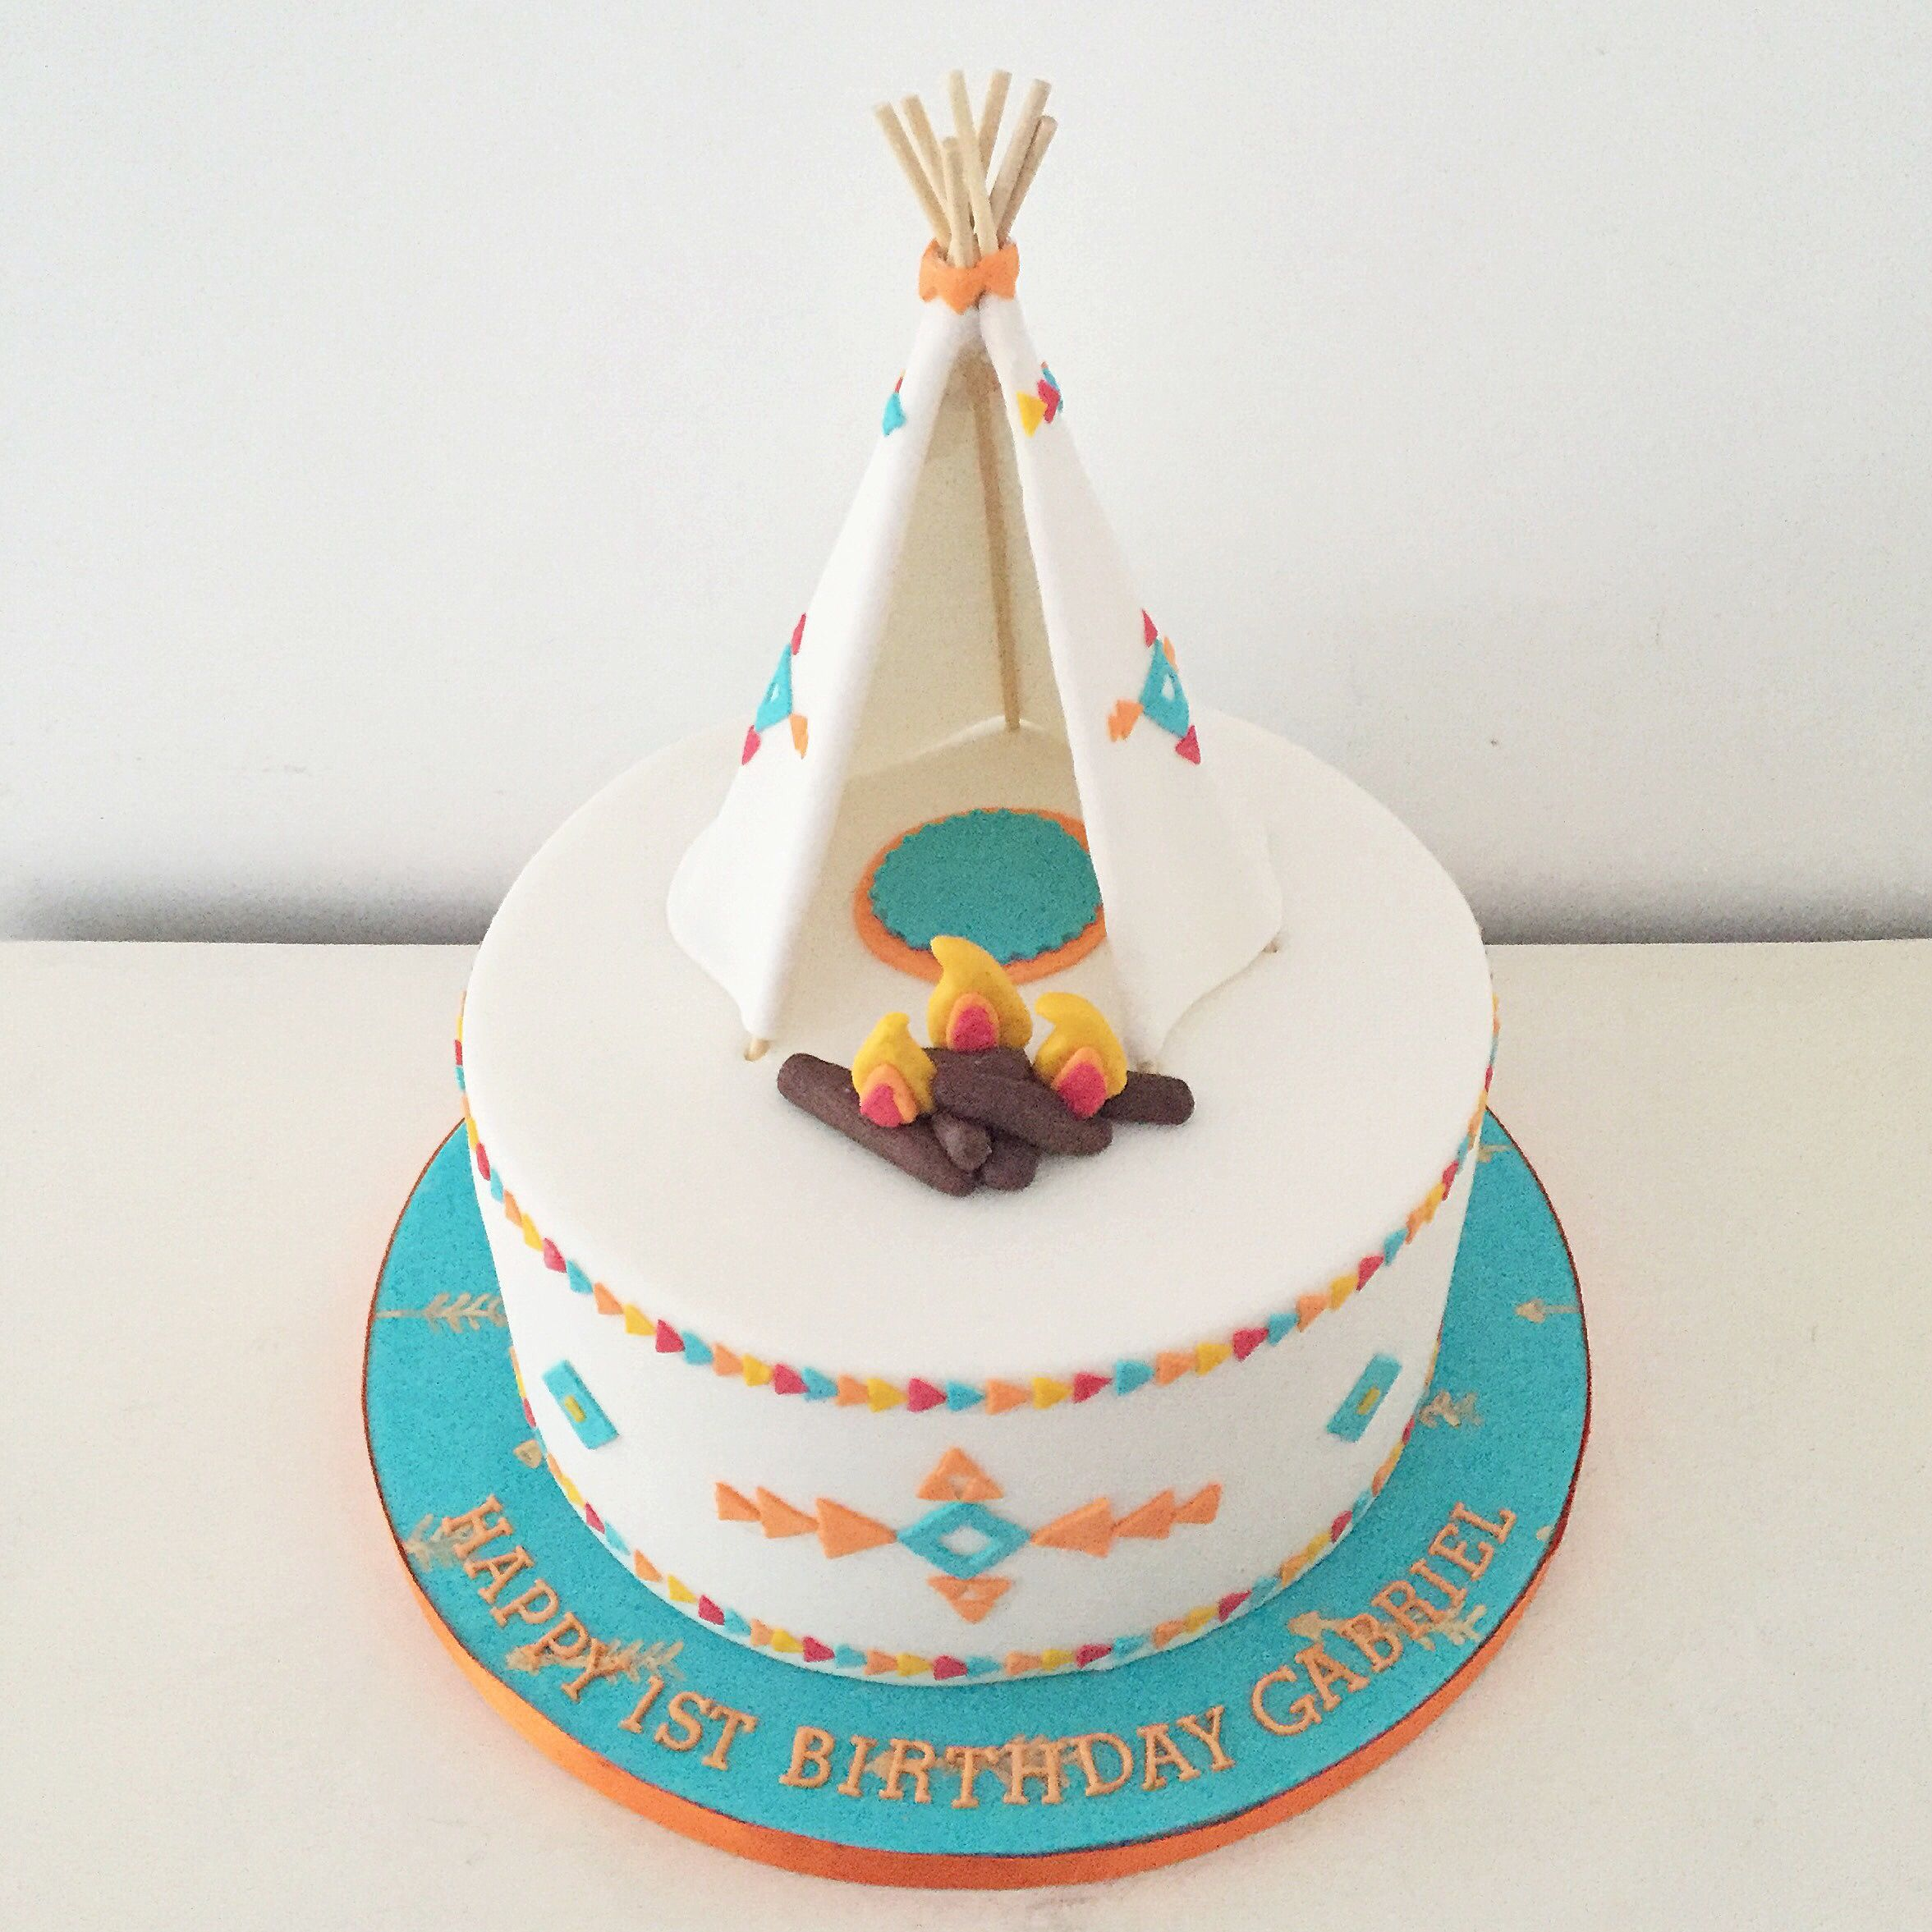 Teepee Birthday Cake By Blossom & Crumb